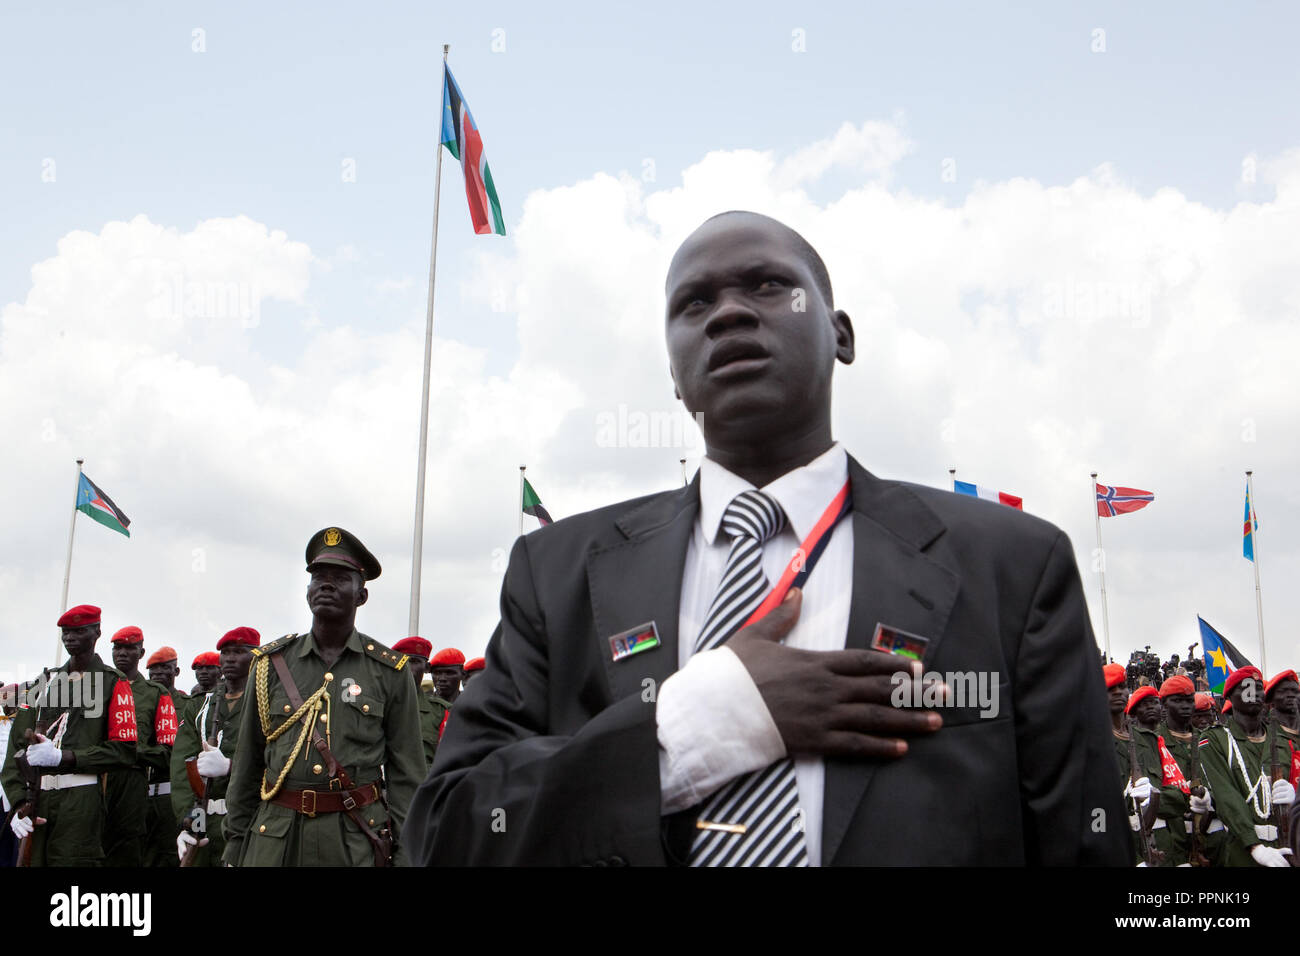 Saturday 9 july 2011 – Juba, Republic of South Sudan – South Sudan raised the flag of its new nation for the first time.Tens of thousands of citizens of the new South Sudan celebrate national independence but whether statehood will resolve issues of identity after a decades-long war remains to be seen. Photo credit: Benedicte Desrus - Stock Image